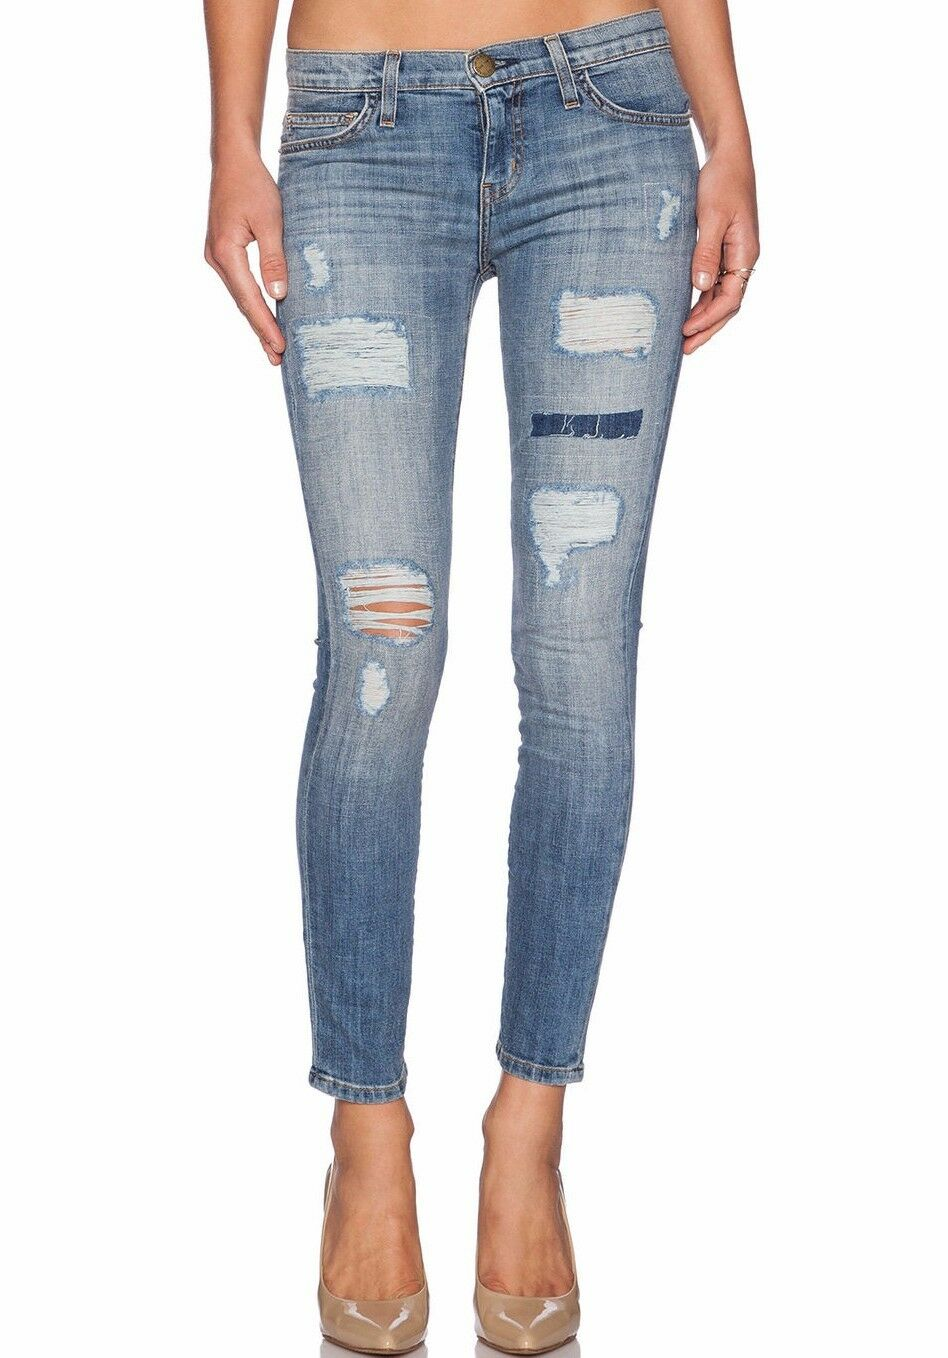 288 NWT CURRENT ELLIOTT Sz27 THE STILETTO CROP SKINNY STRETCH-JEANS VIN NY REPA